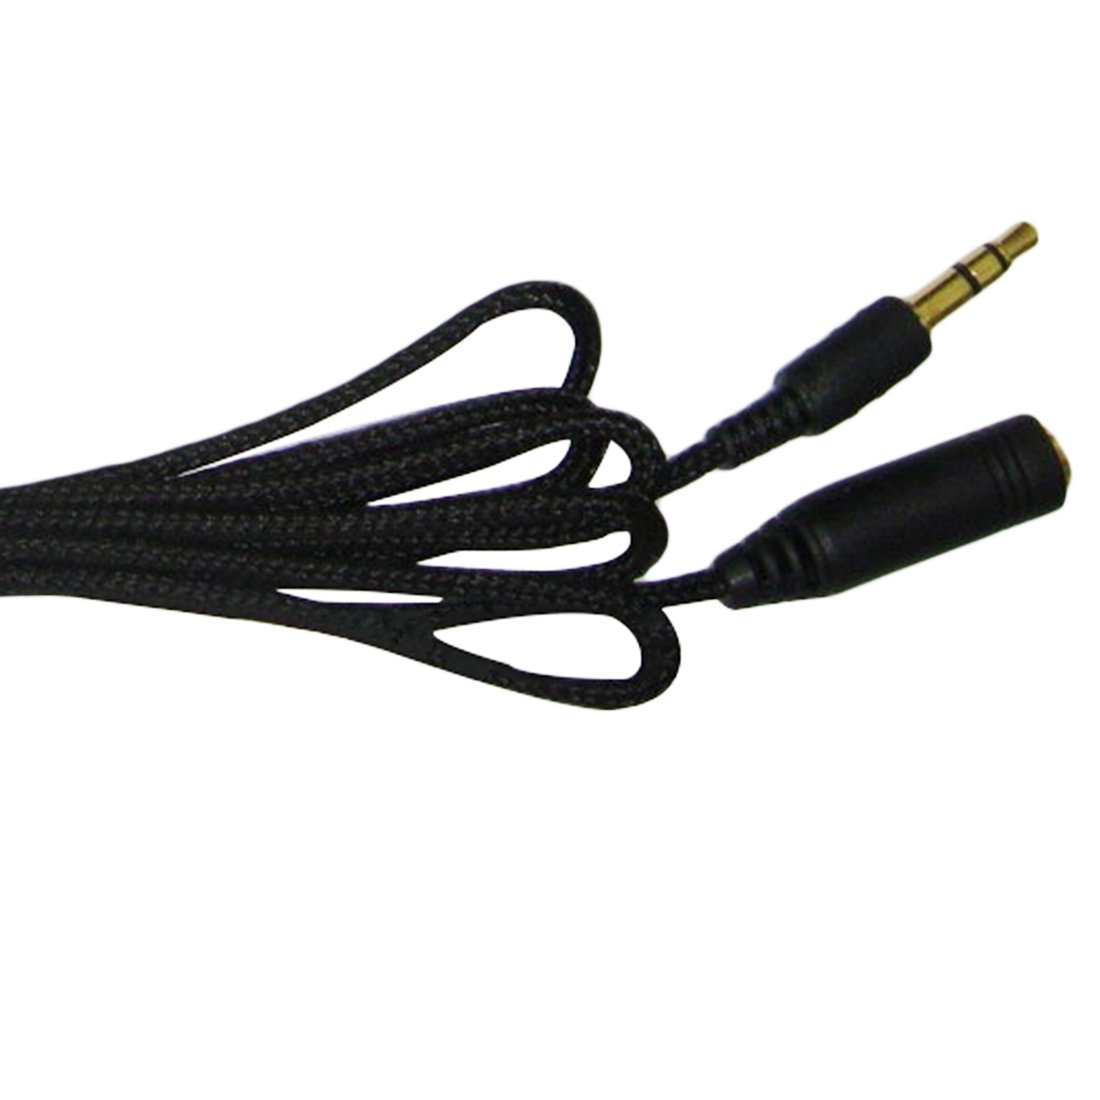 centechia Newest 3.5mm Stereo Audio Earphone Extension Cable 5m/3m/1.5m Ultra Long for headphone computer cellphone MP3/4